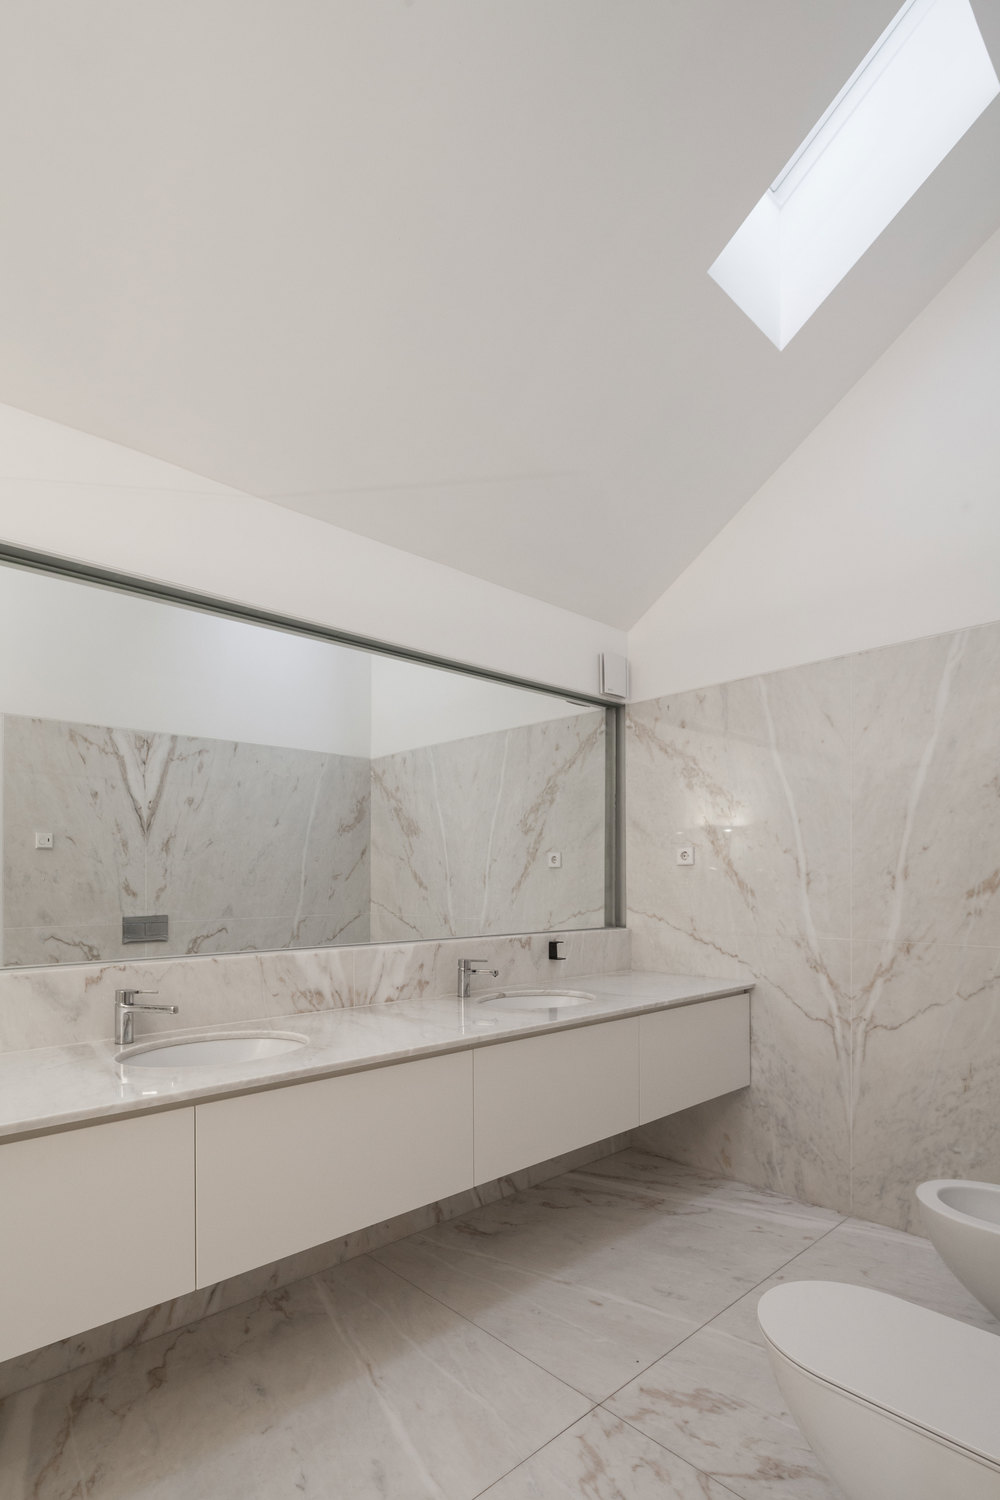 PROD_House_of_four_houses_bathroom_view1.jpg